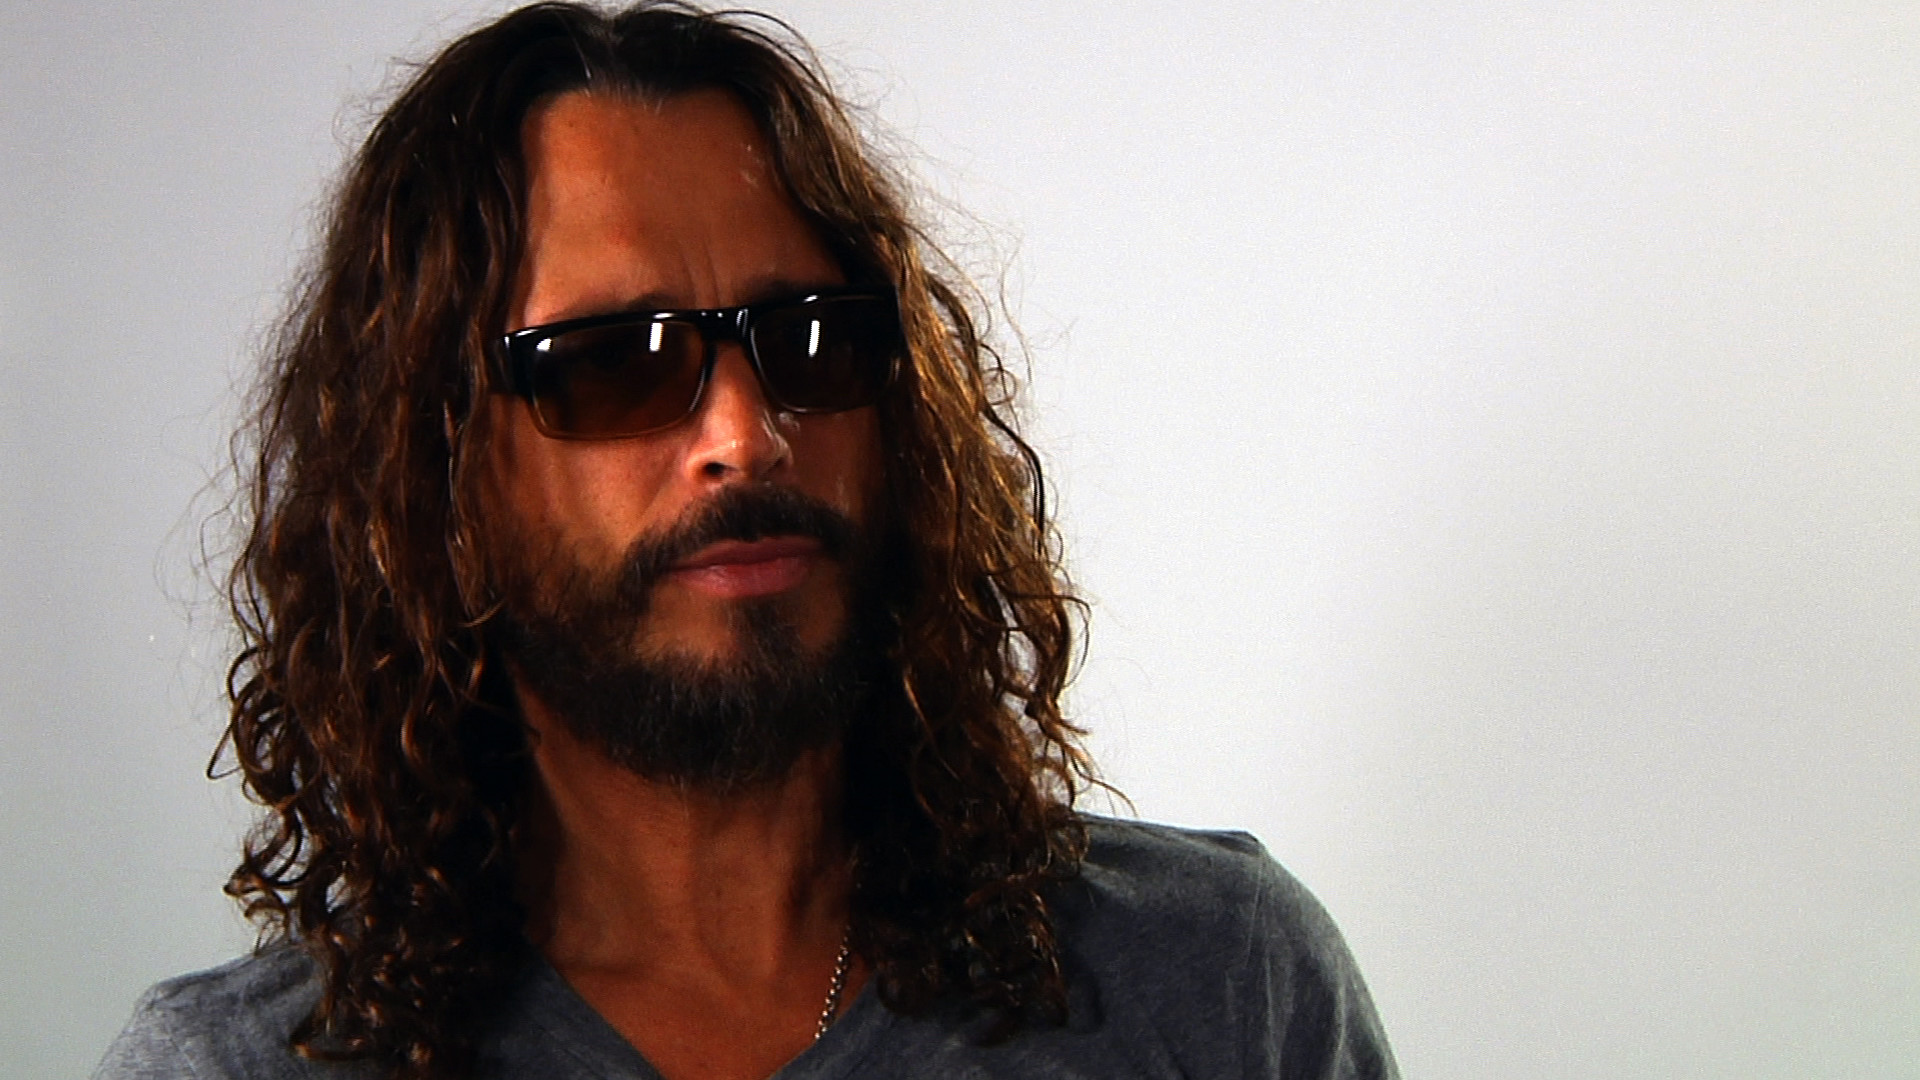 1920x1080 Chris Cornell Wallpaper in HQ Resolution